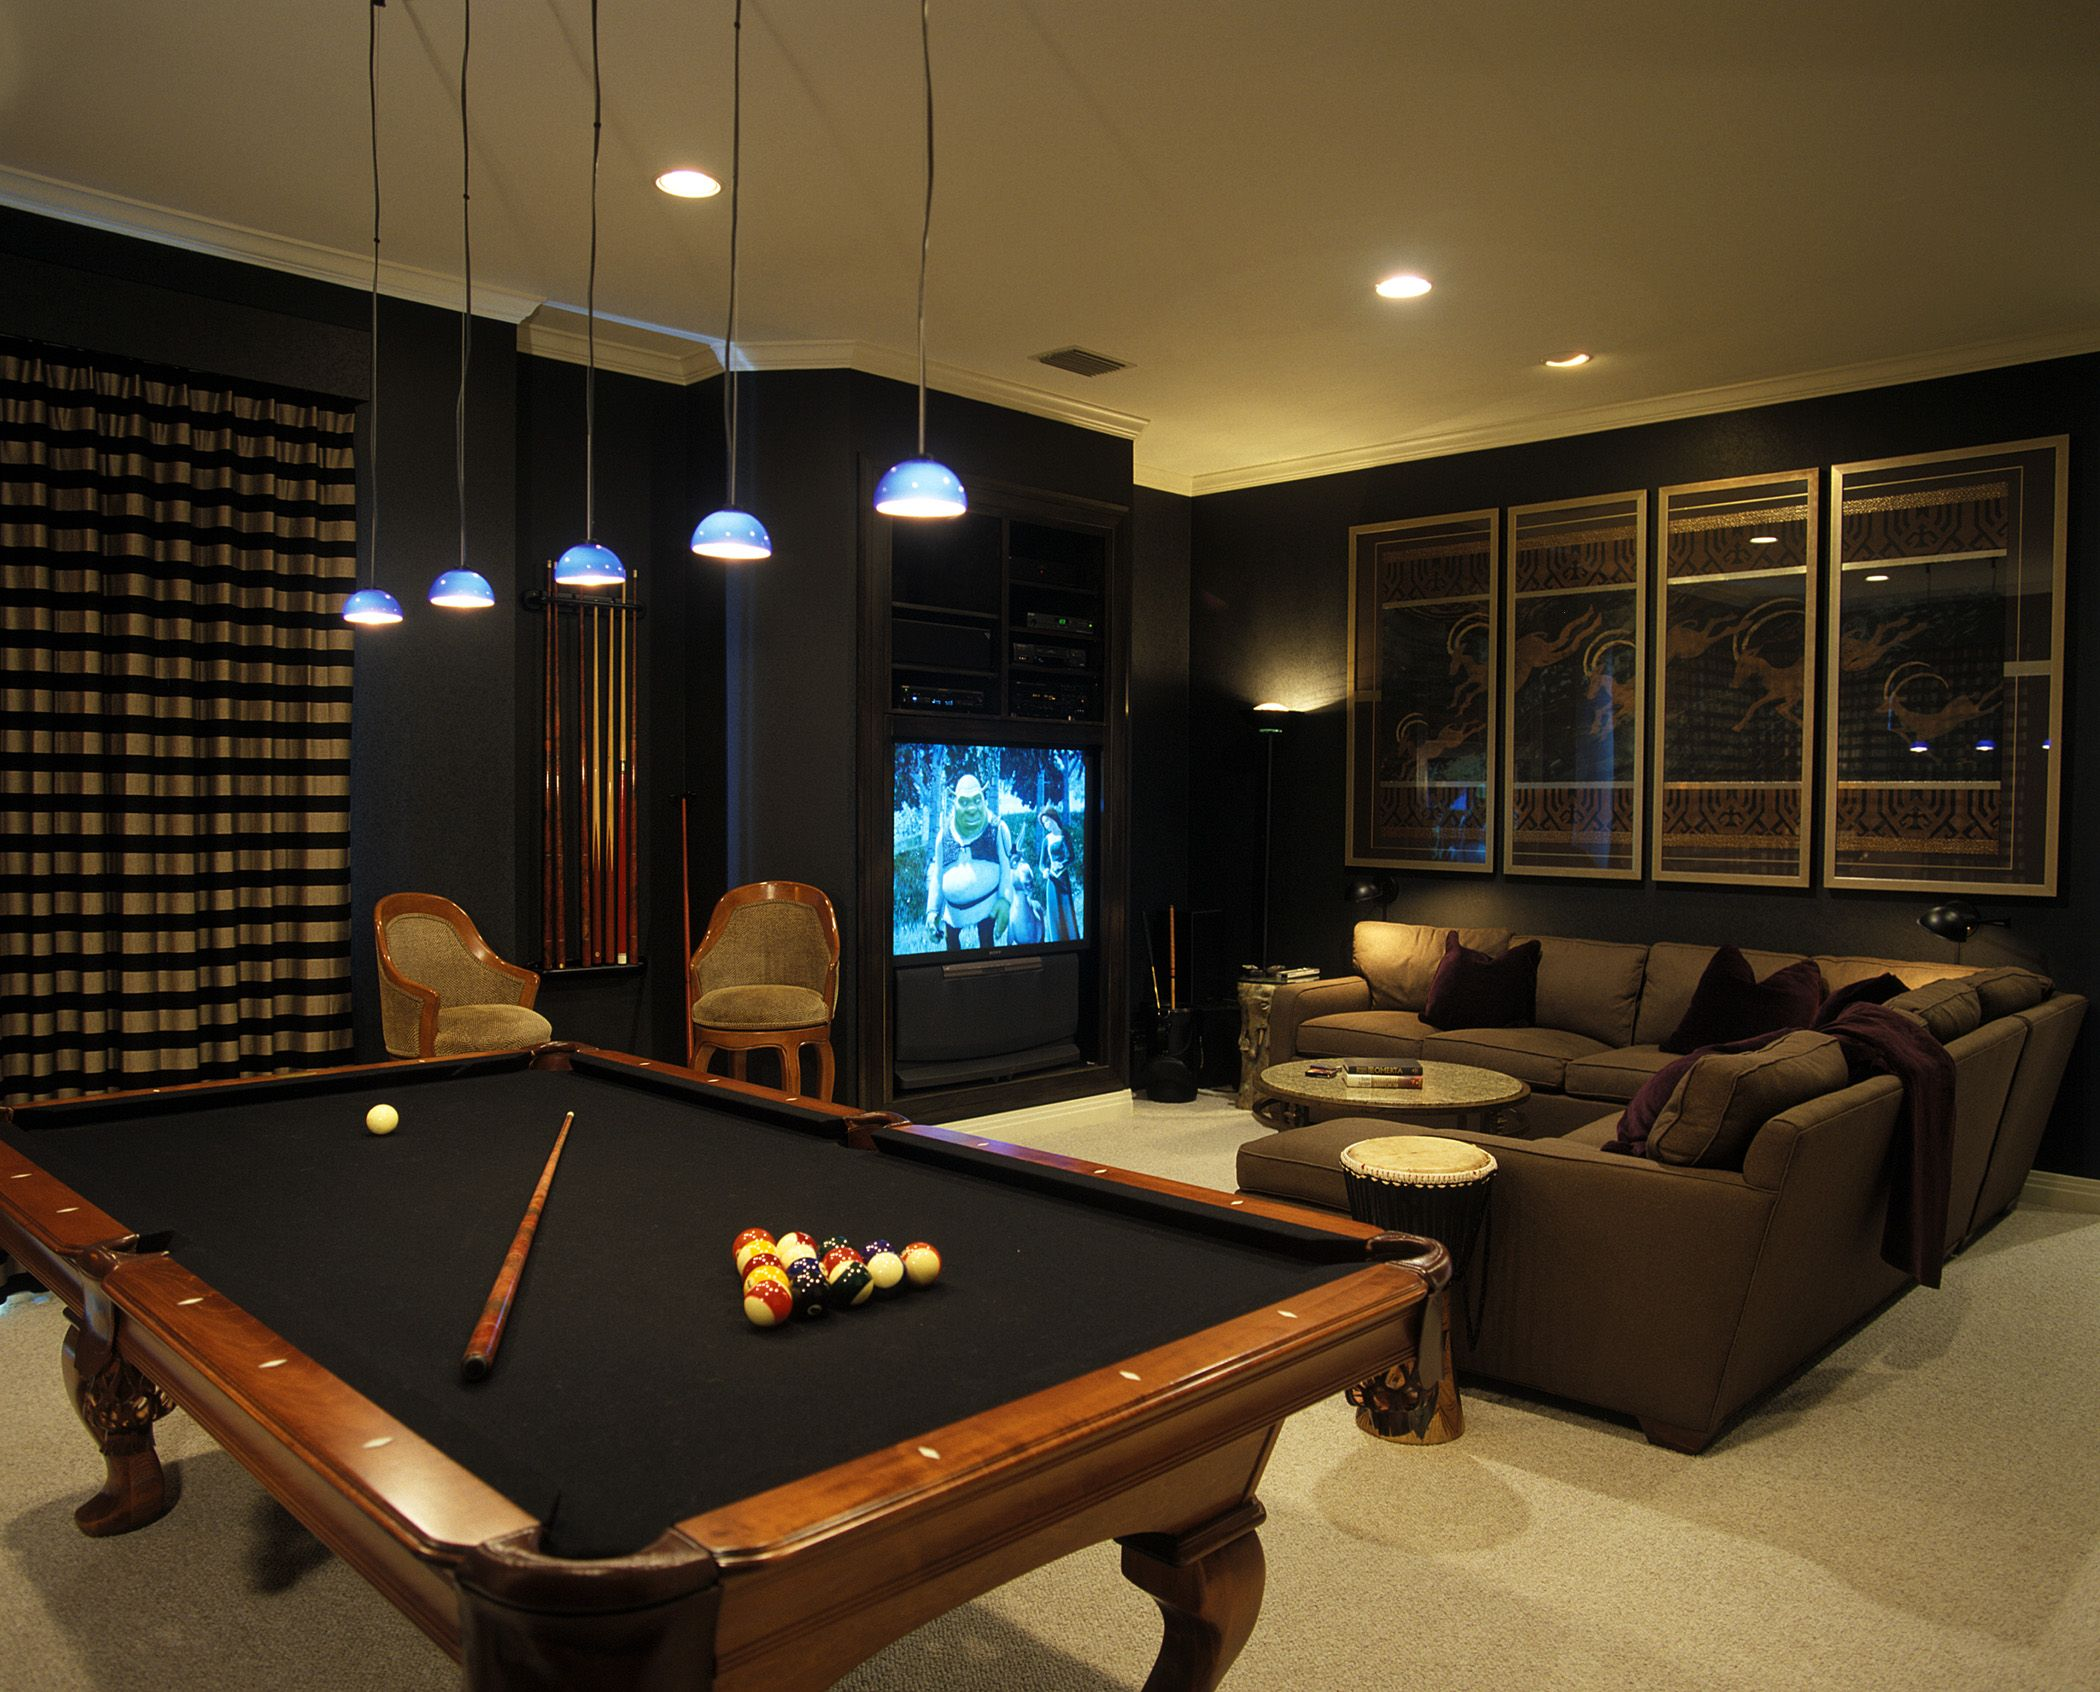 Media Room Furniture Ideas Part - 22: Dark Media Room With Pool Table